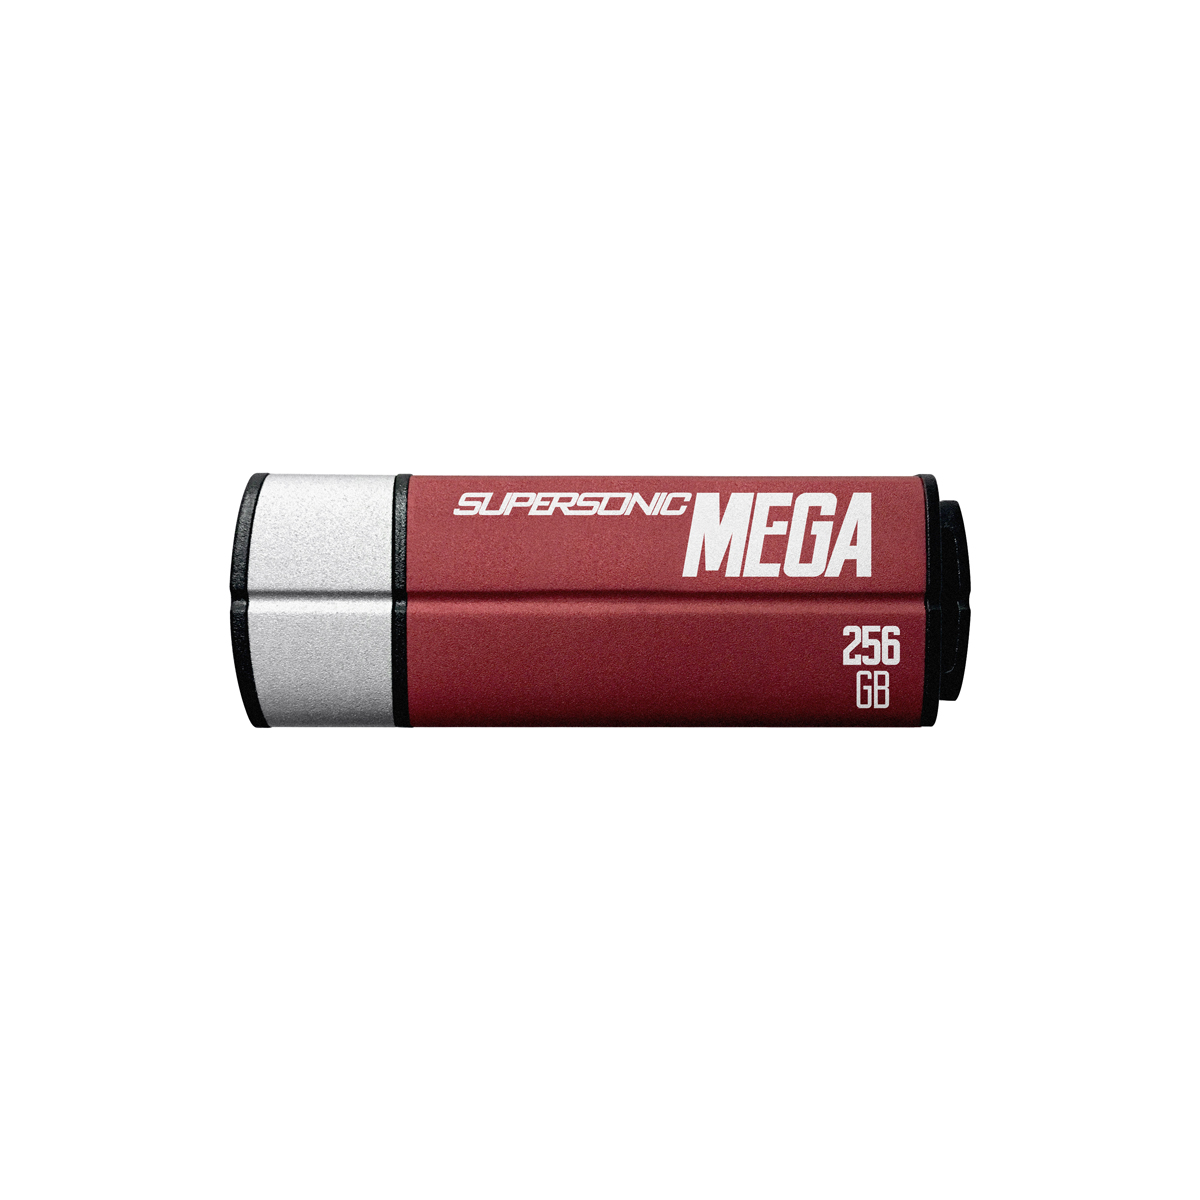 Flash disk Patriot Mega 256GB USB 3.1